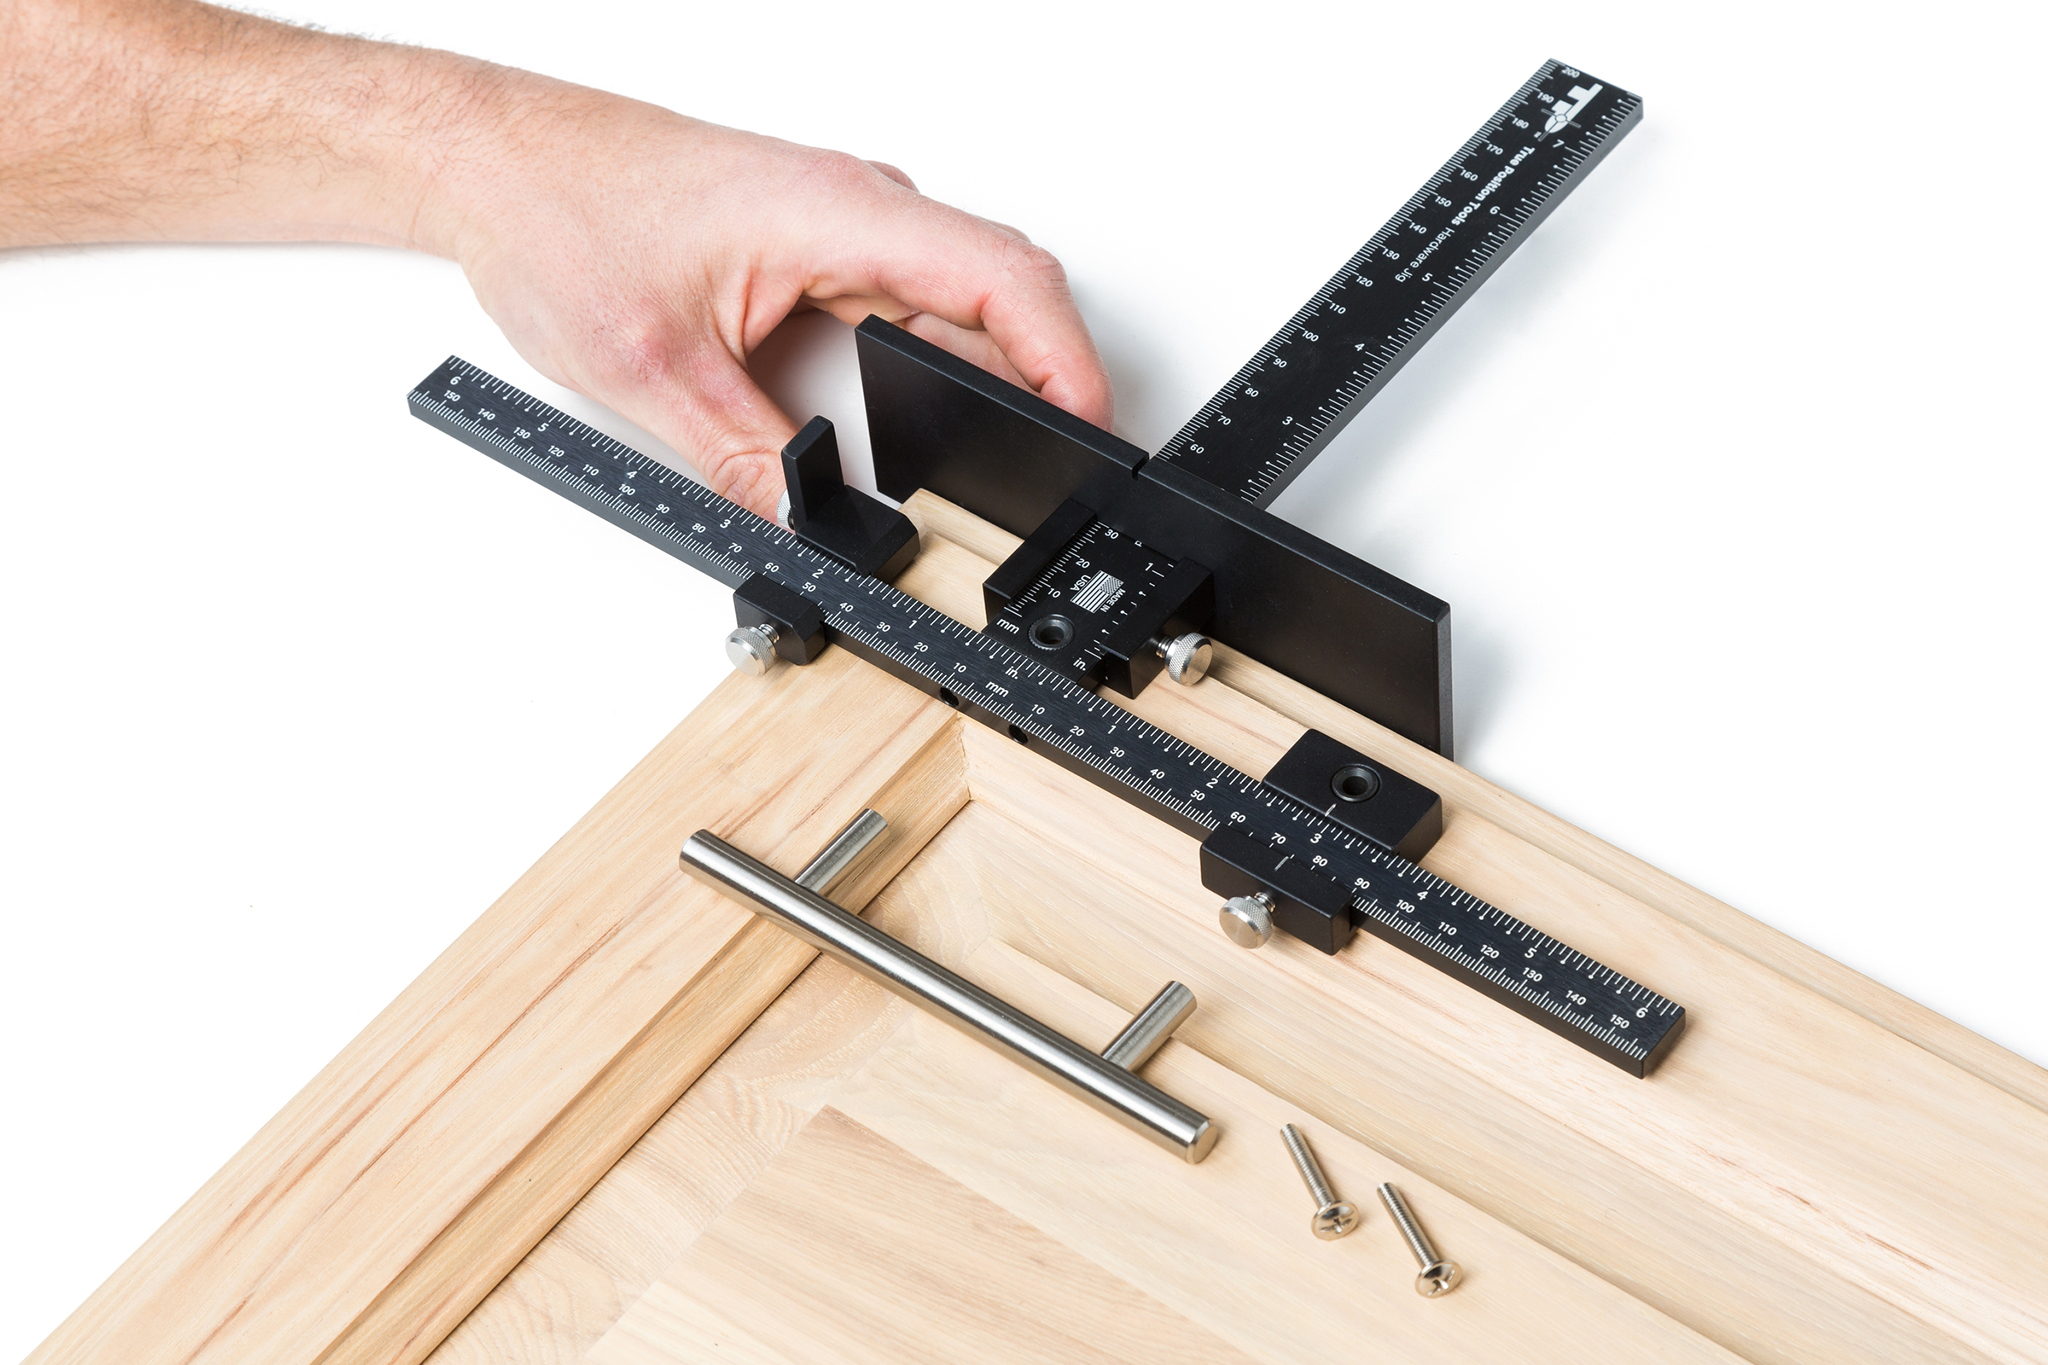 True Position Tp 1934 Cabinet Hardware Jig True Position Tools intended for size 2048 X 1365